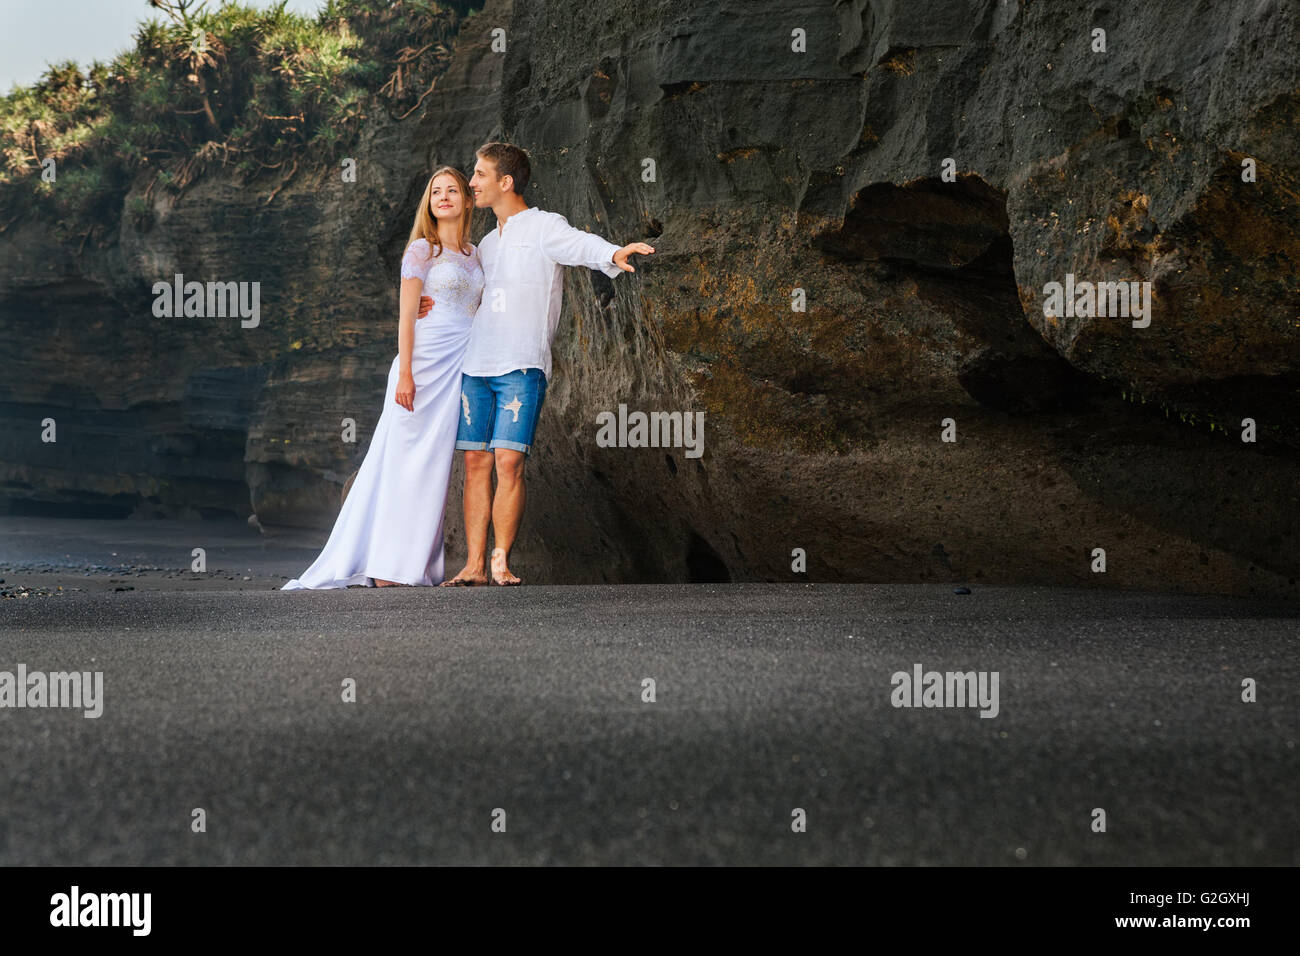 Happy young family on honeymoon holidays - just married loving man and woman embracing  on sand beach with black - Stock Image